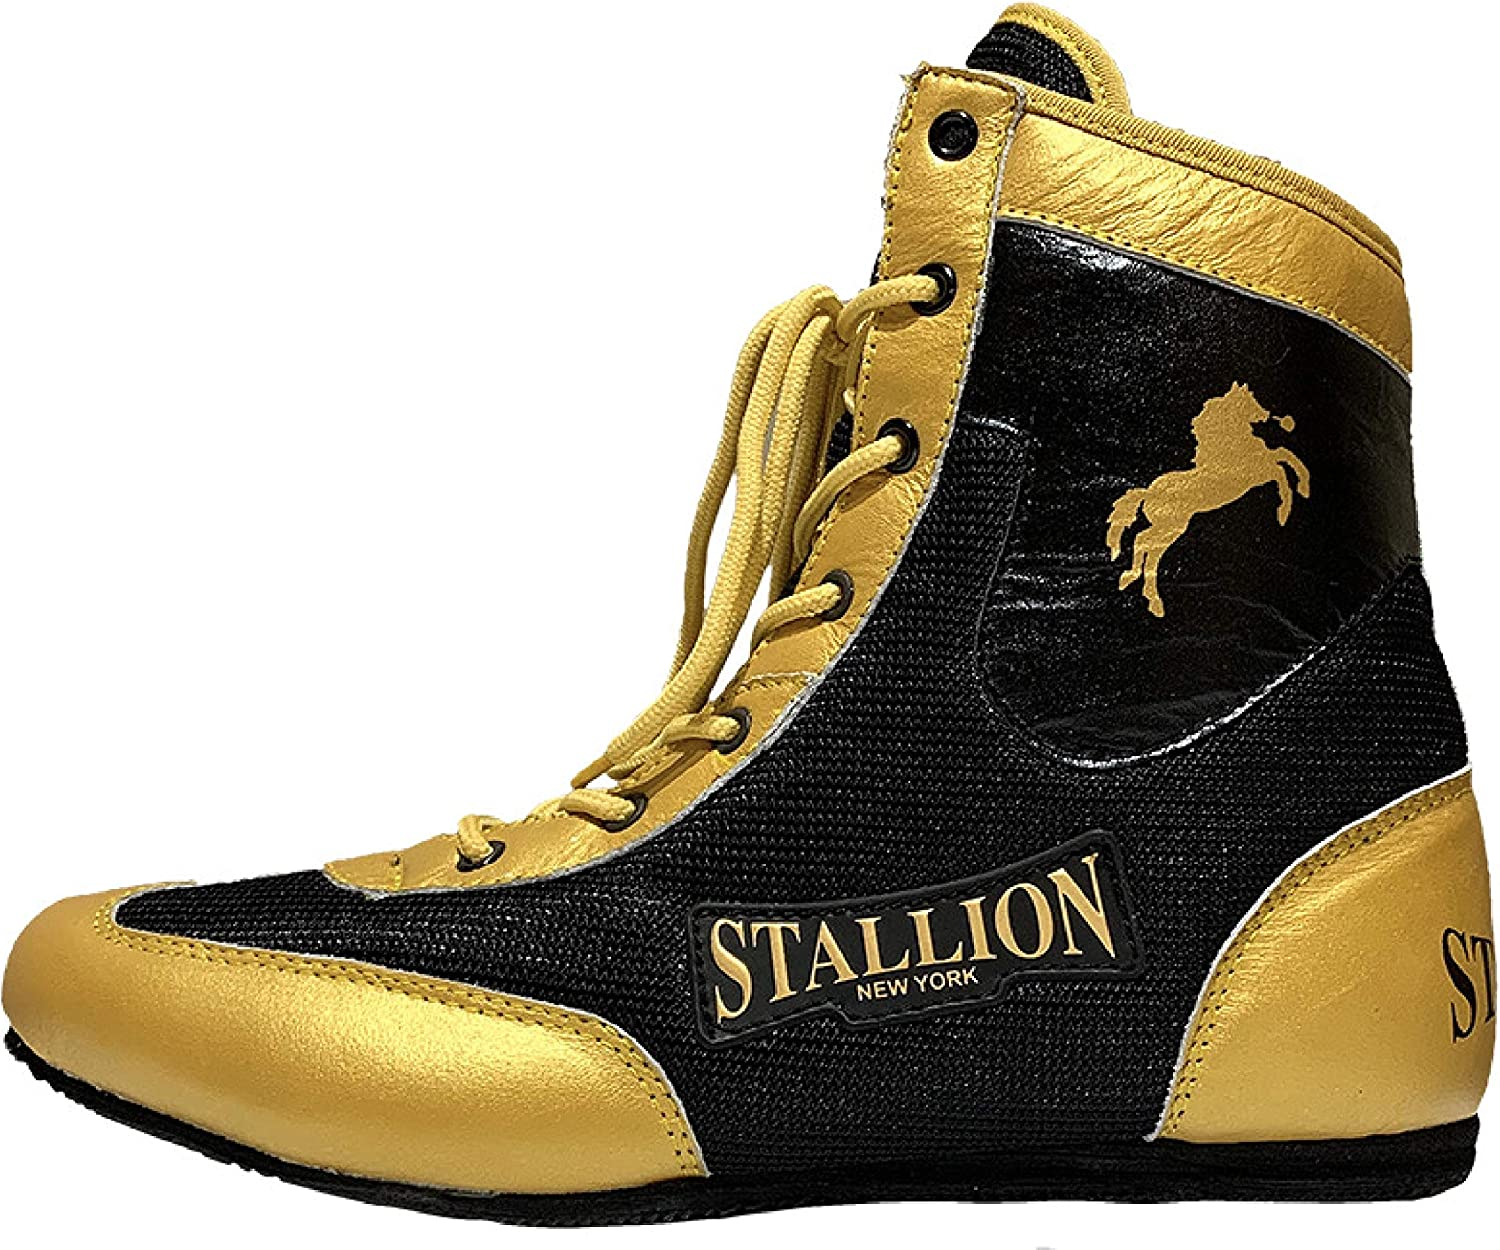 STALLION NEW YORK All Pro Boxing Gloves State-of-The-Art Quality Superior Lace Gloves for Sparring//Bag Classic Power Series Genuine Leather